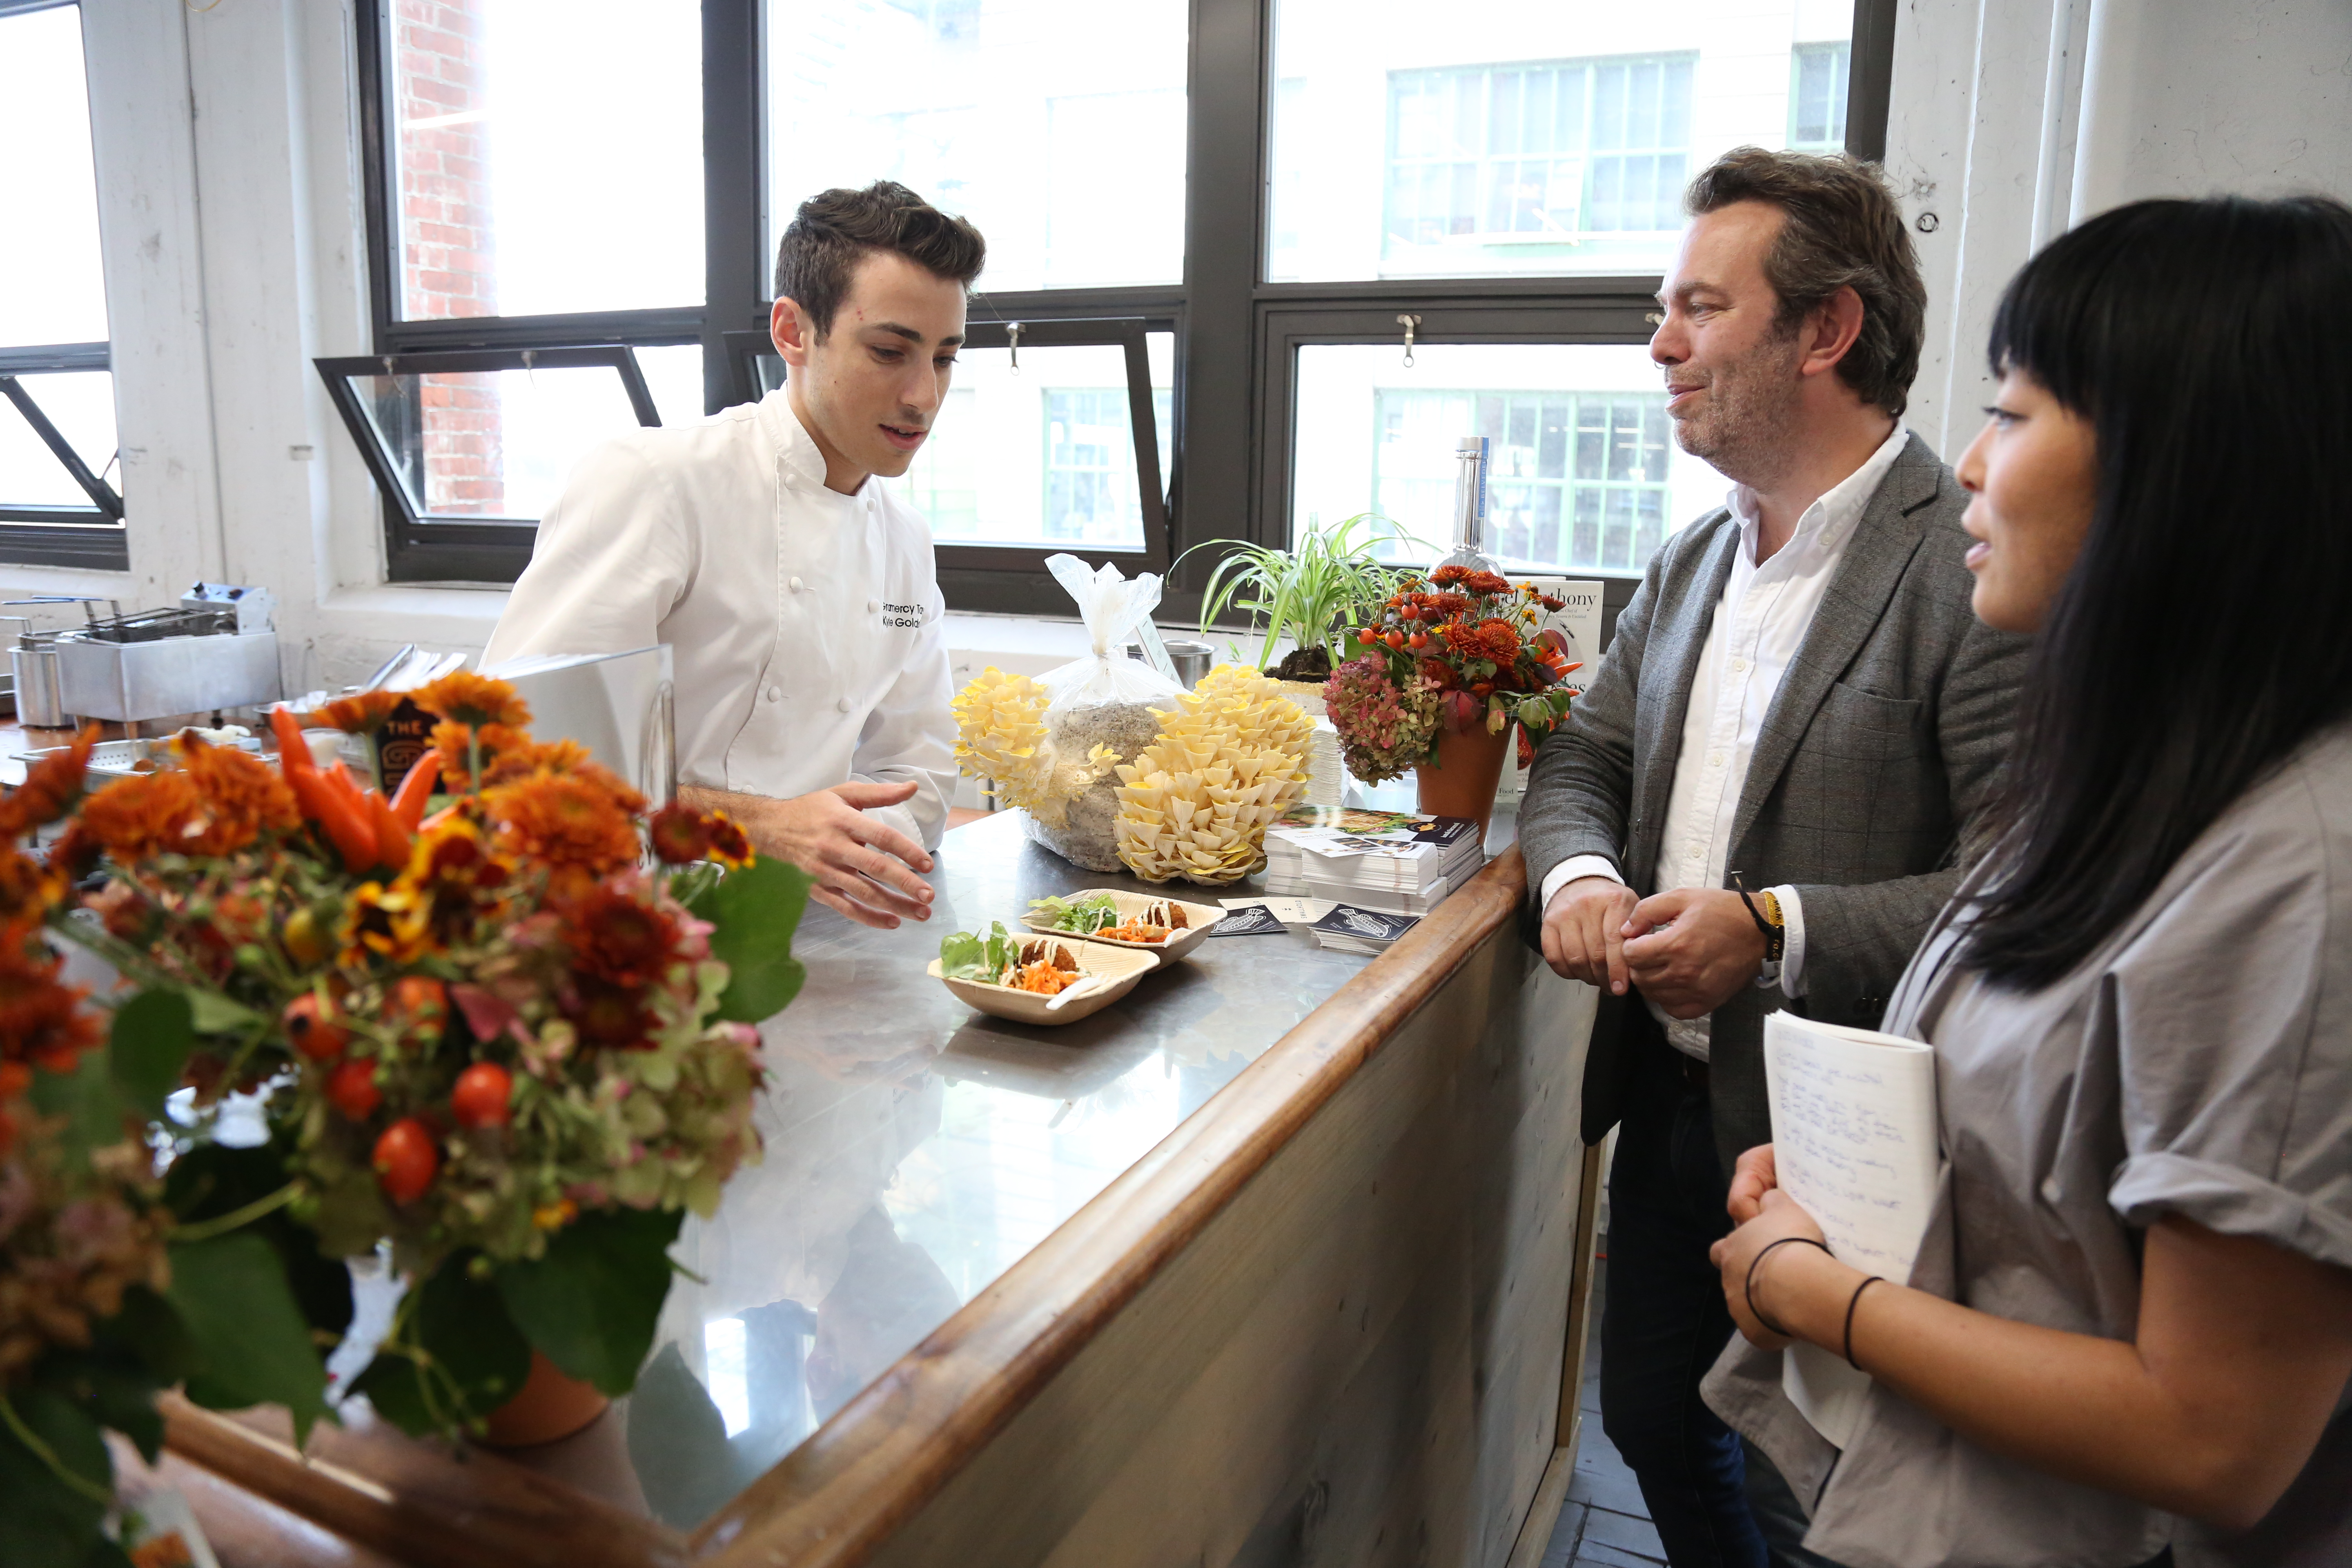 Gramercy Tavern sous chef Kyle Goldstein with attendees at the Food Loves Tech event in Brooklyn, Nov. 3, 2017. (T. Trinh/VOA)